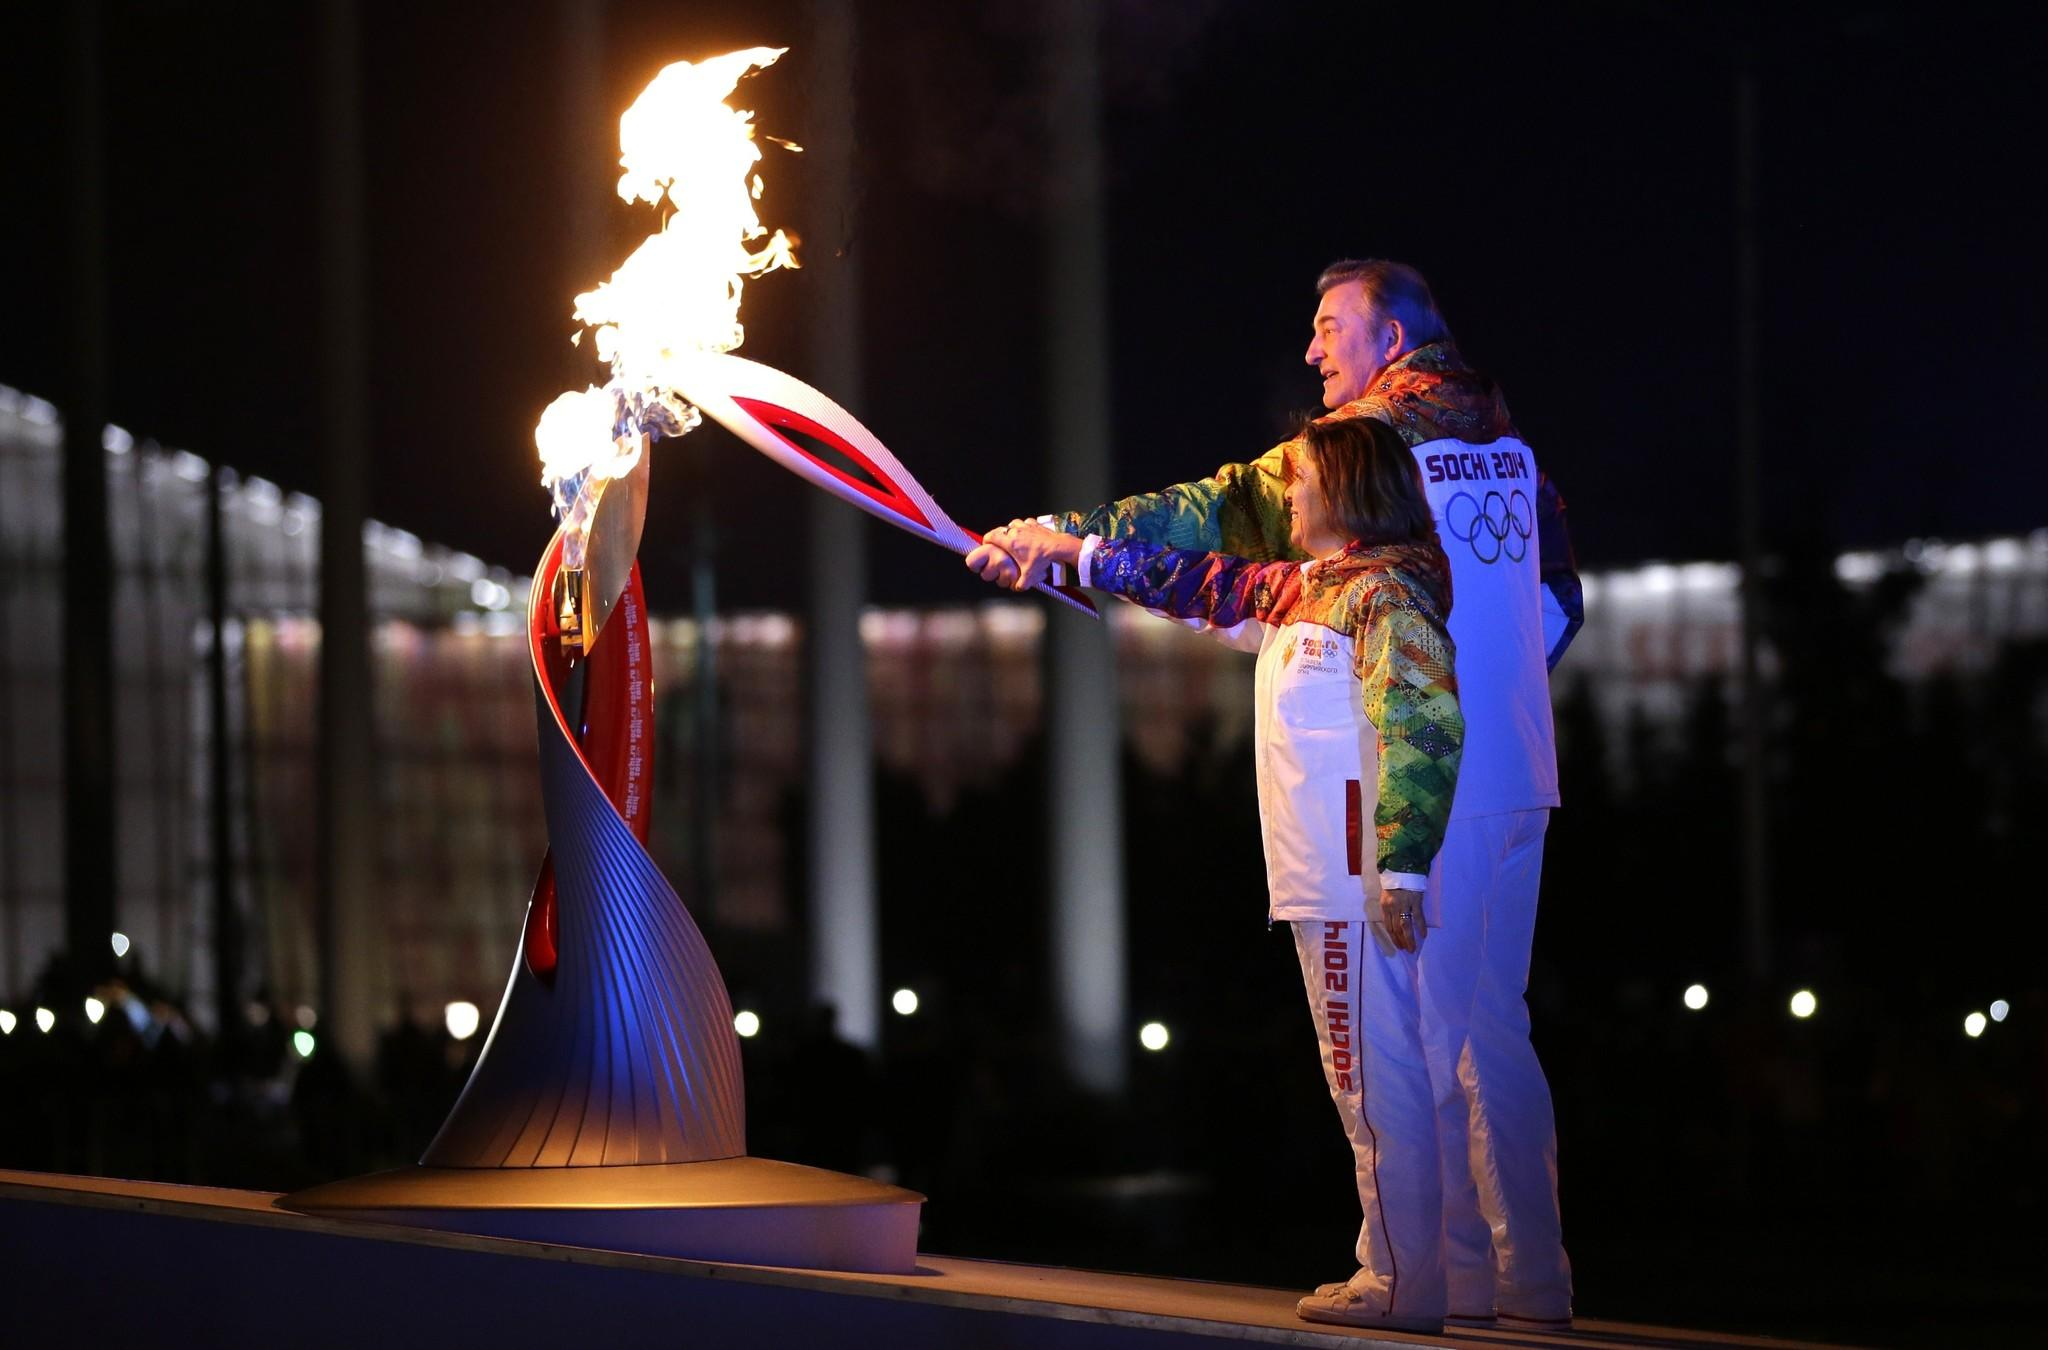 Russia's torchbearers Irina Rodnina (L) and Vladislav Tretyak light the Olympic cauldron at the opening ceremony of the 2014 Winter Olympics on February 7, 2014, in Sochi.